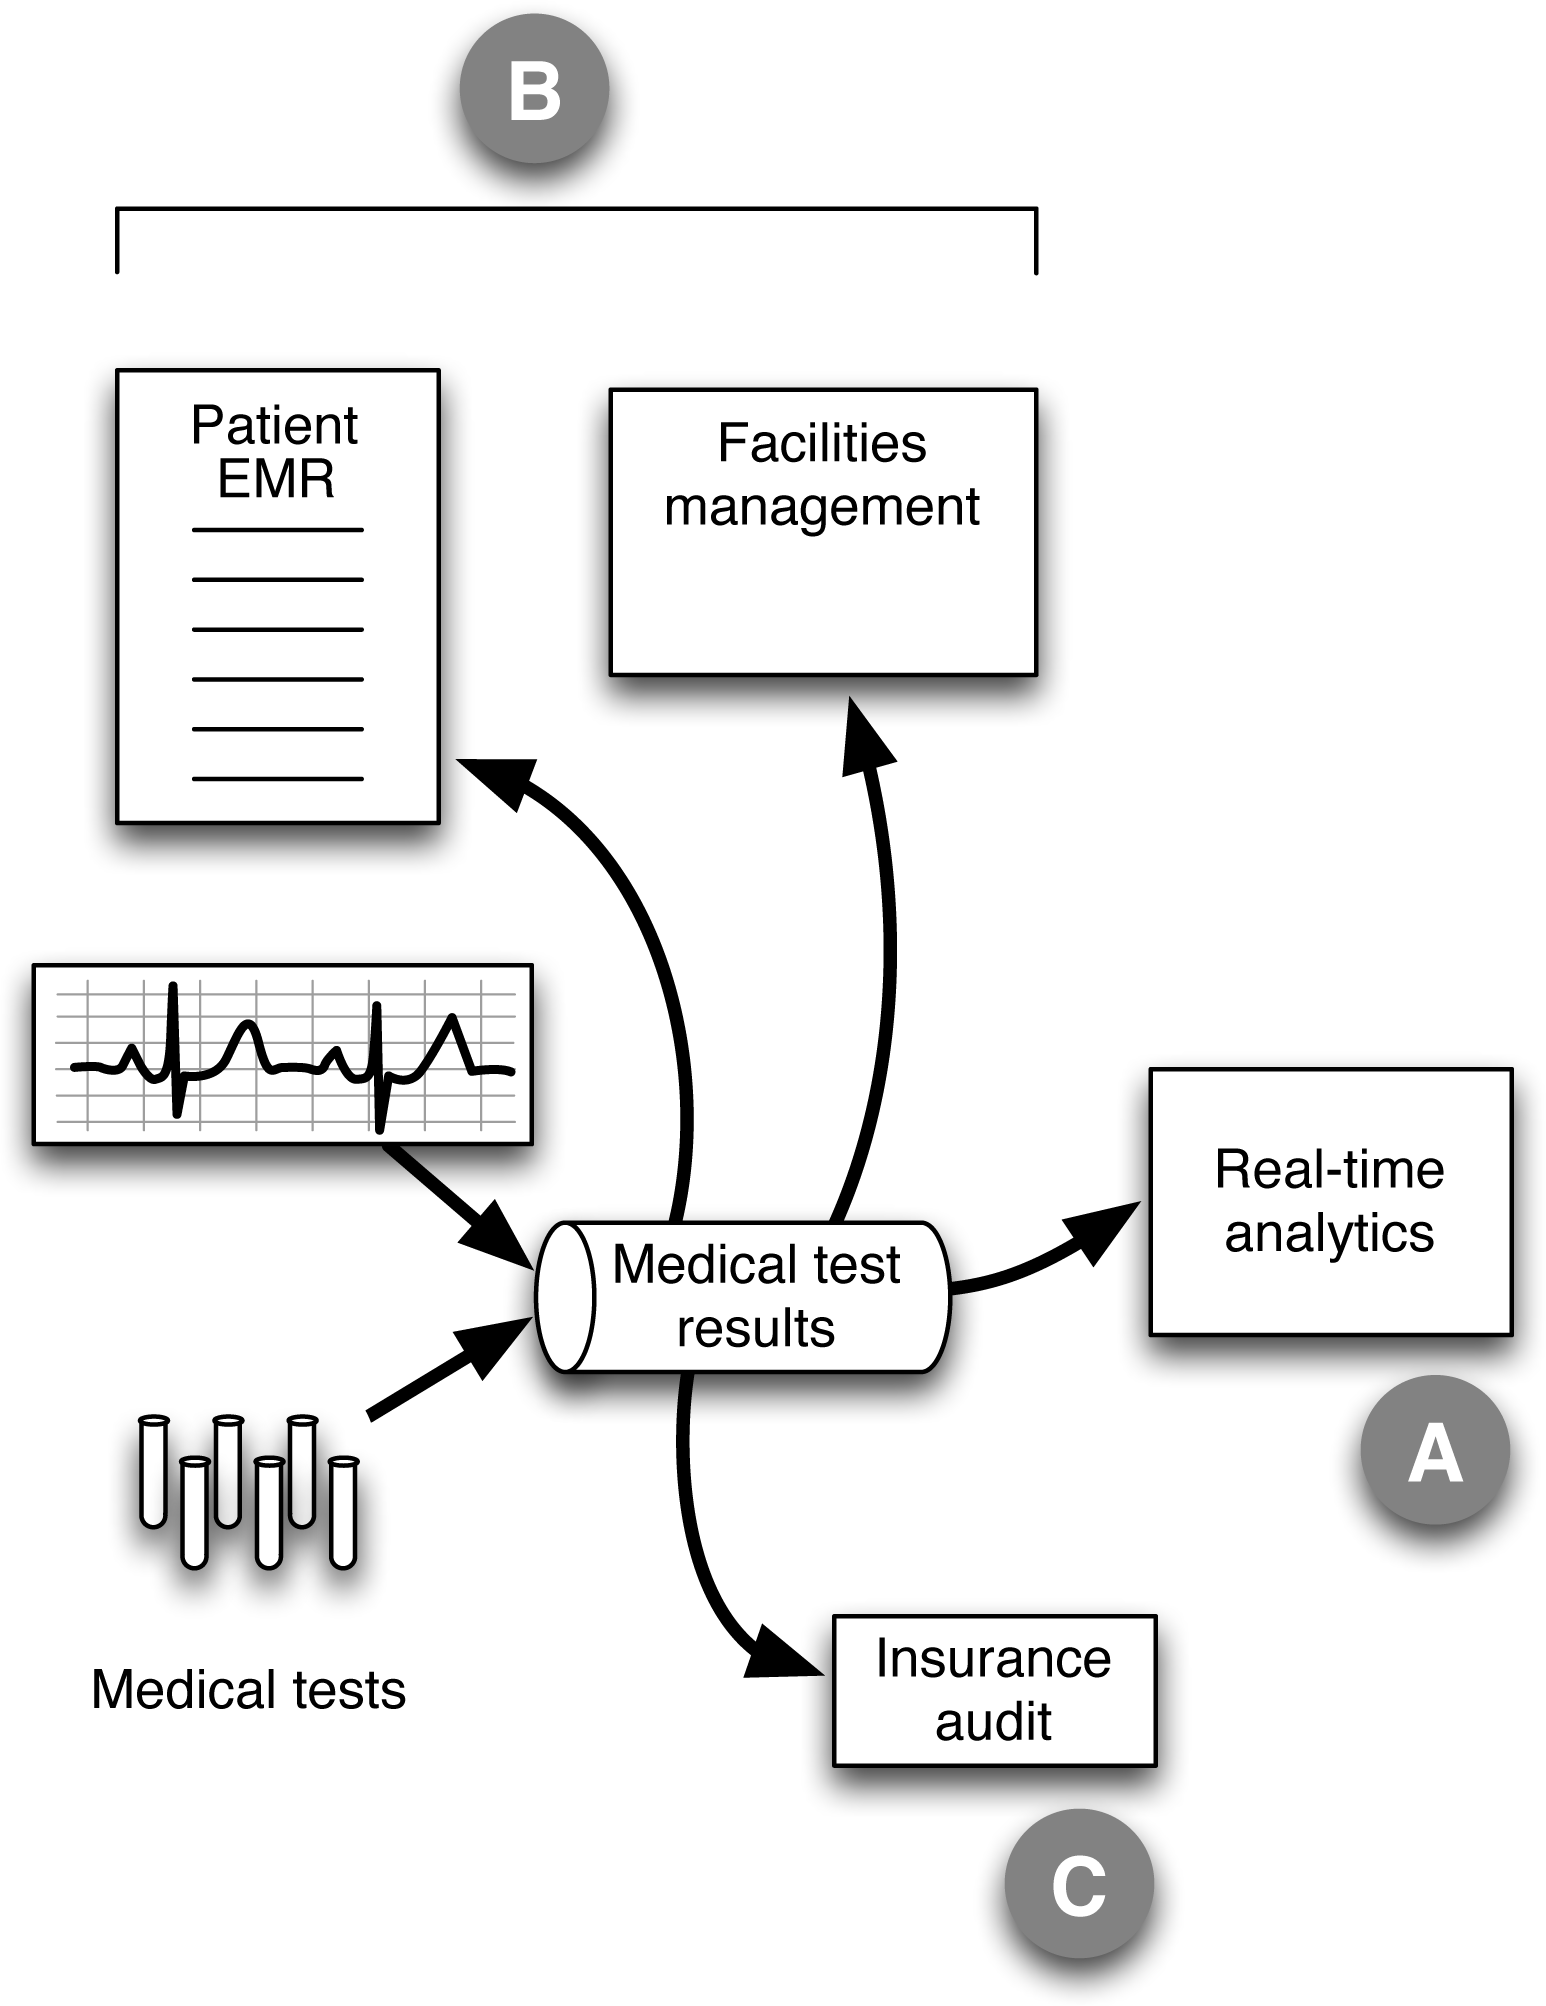 hight resolution of healthcare example with streaming data used for more than just real time analytics the diagram shows a schematic design for a system that handles data from